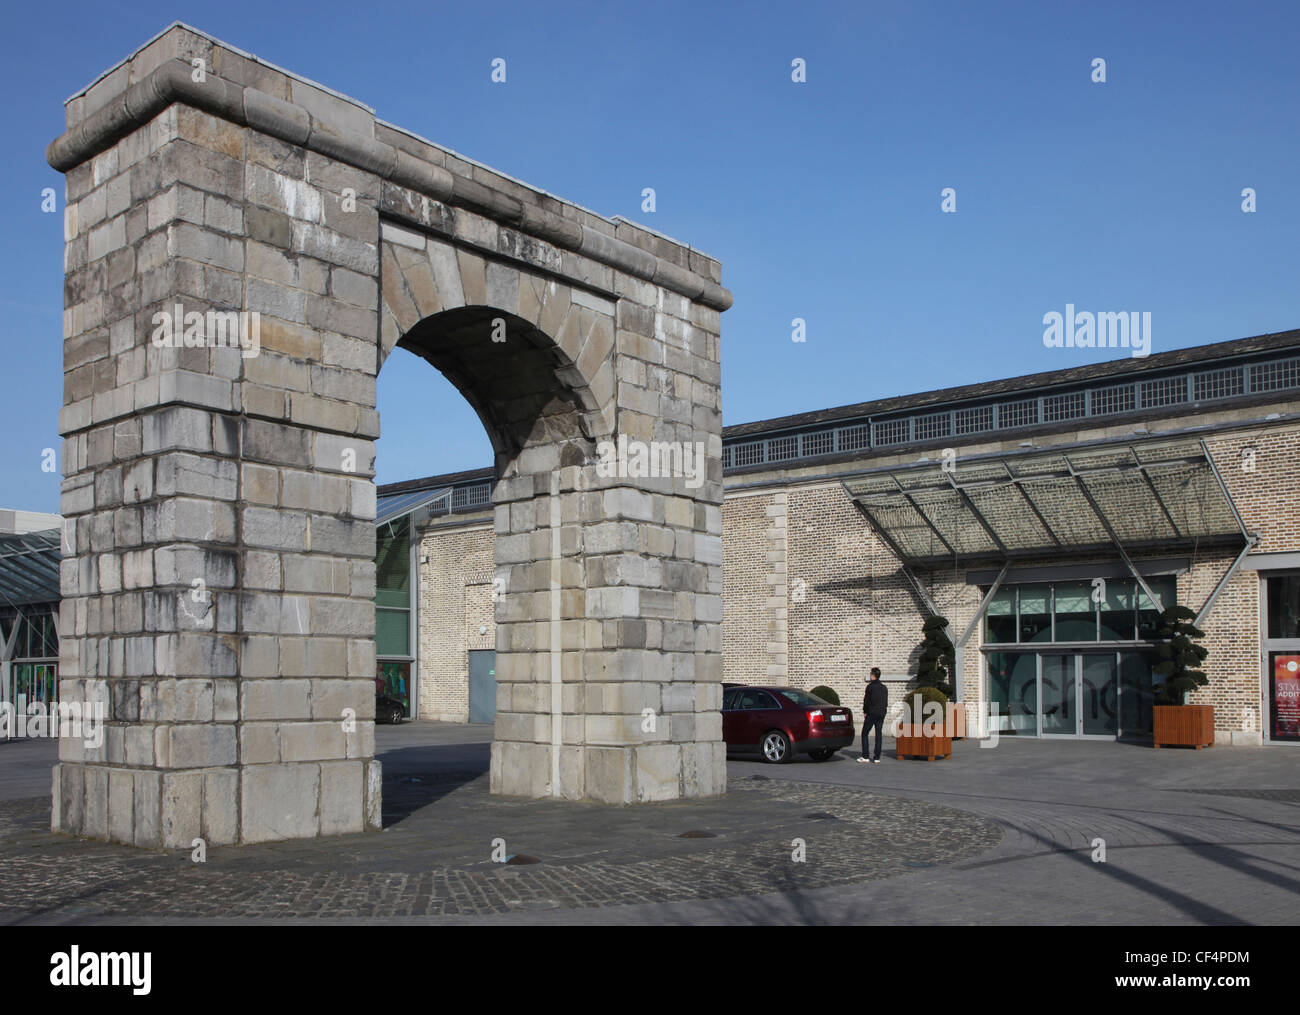 The chq building by a Georgian arch, North Wall, Docklands, Dublin. - Stock Image